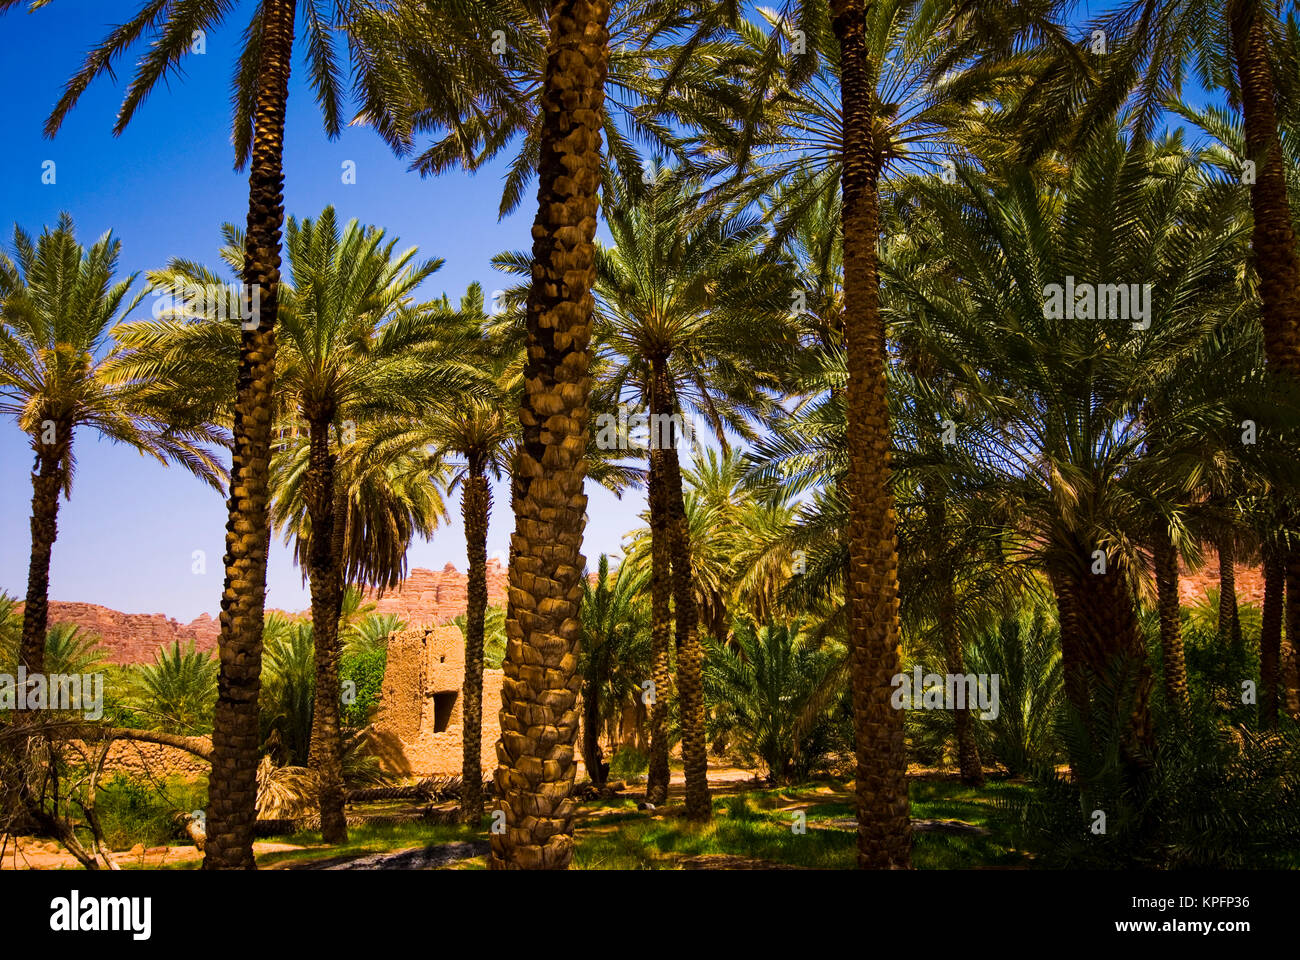 Saudi Arabia, Al-Ula date palm trees in the oasis and old houses - Stock Image